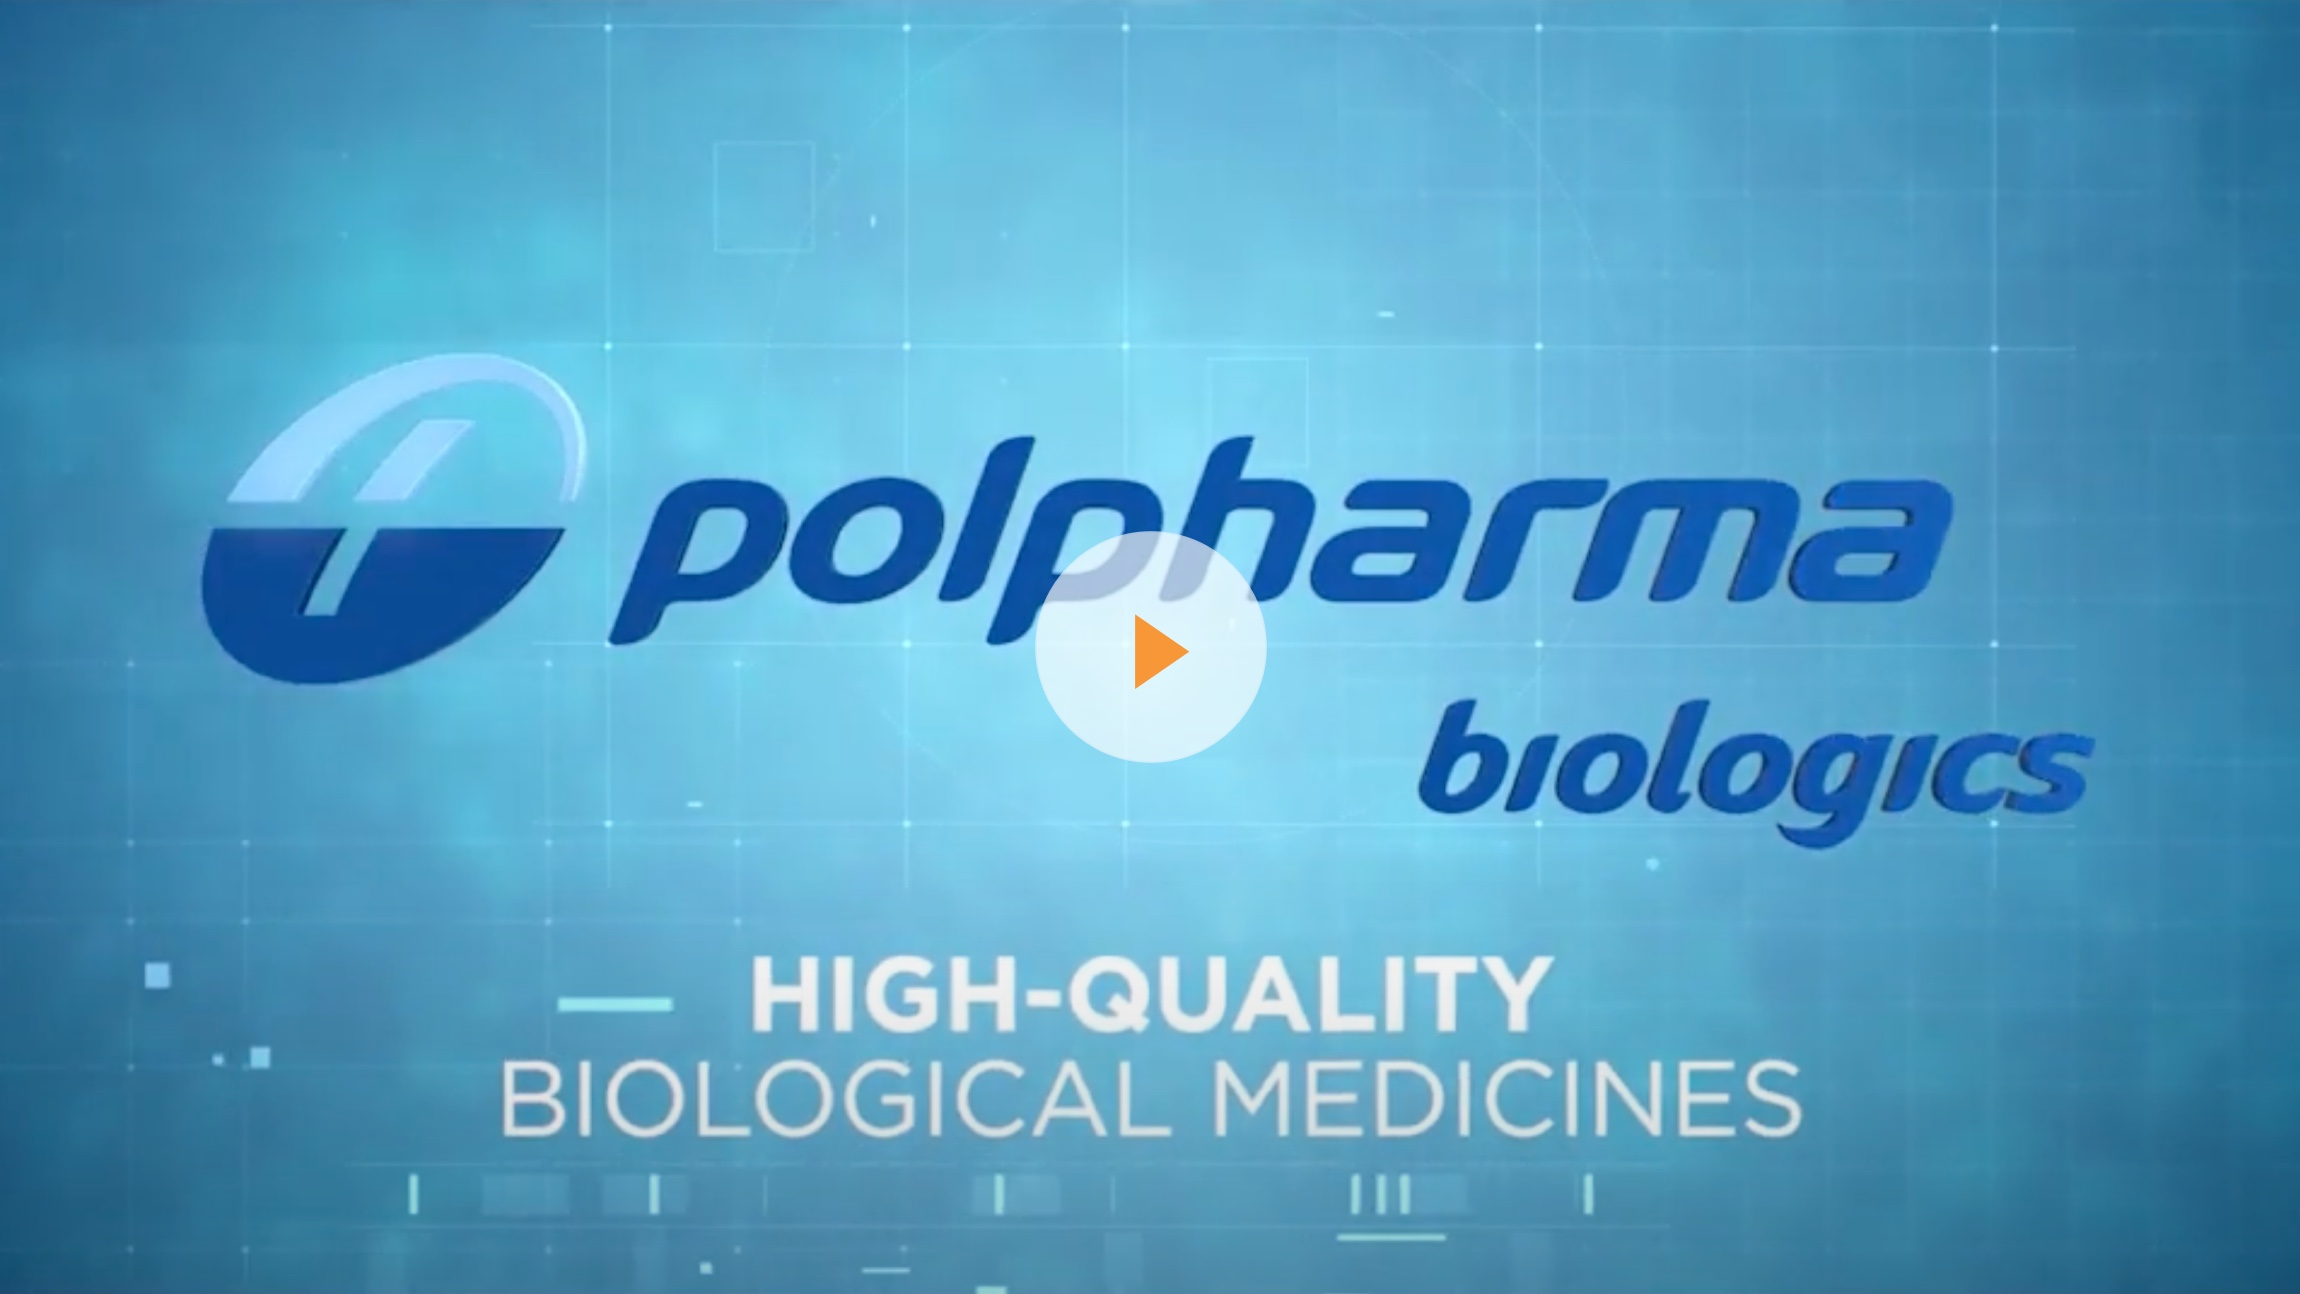 polpharma_vid_screen_1150x647@2x